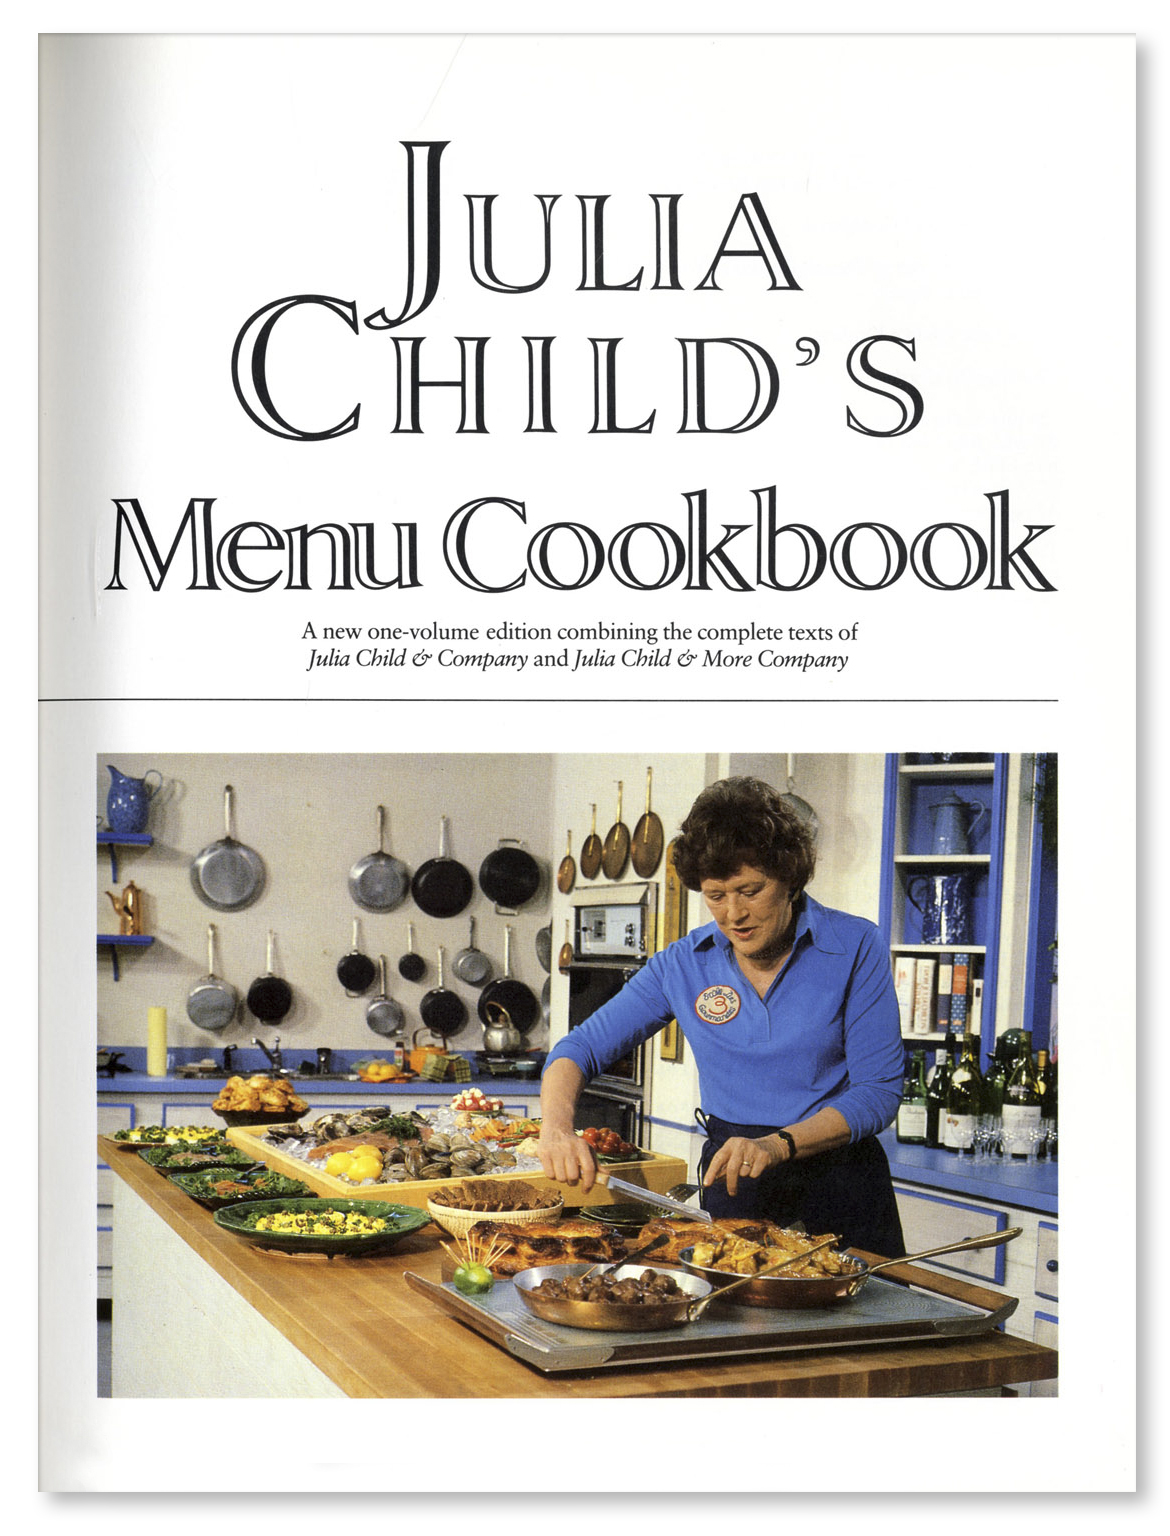 Celebrity chef cookbooks impala